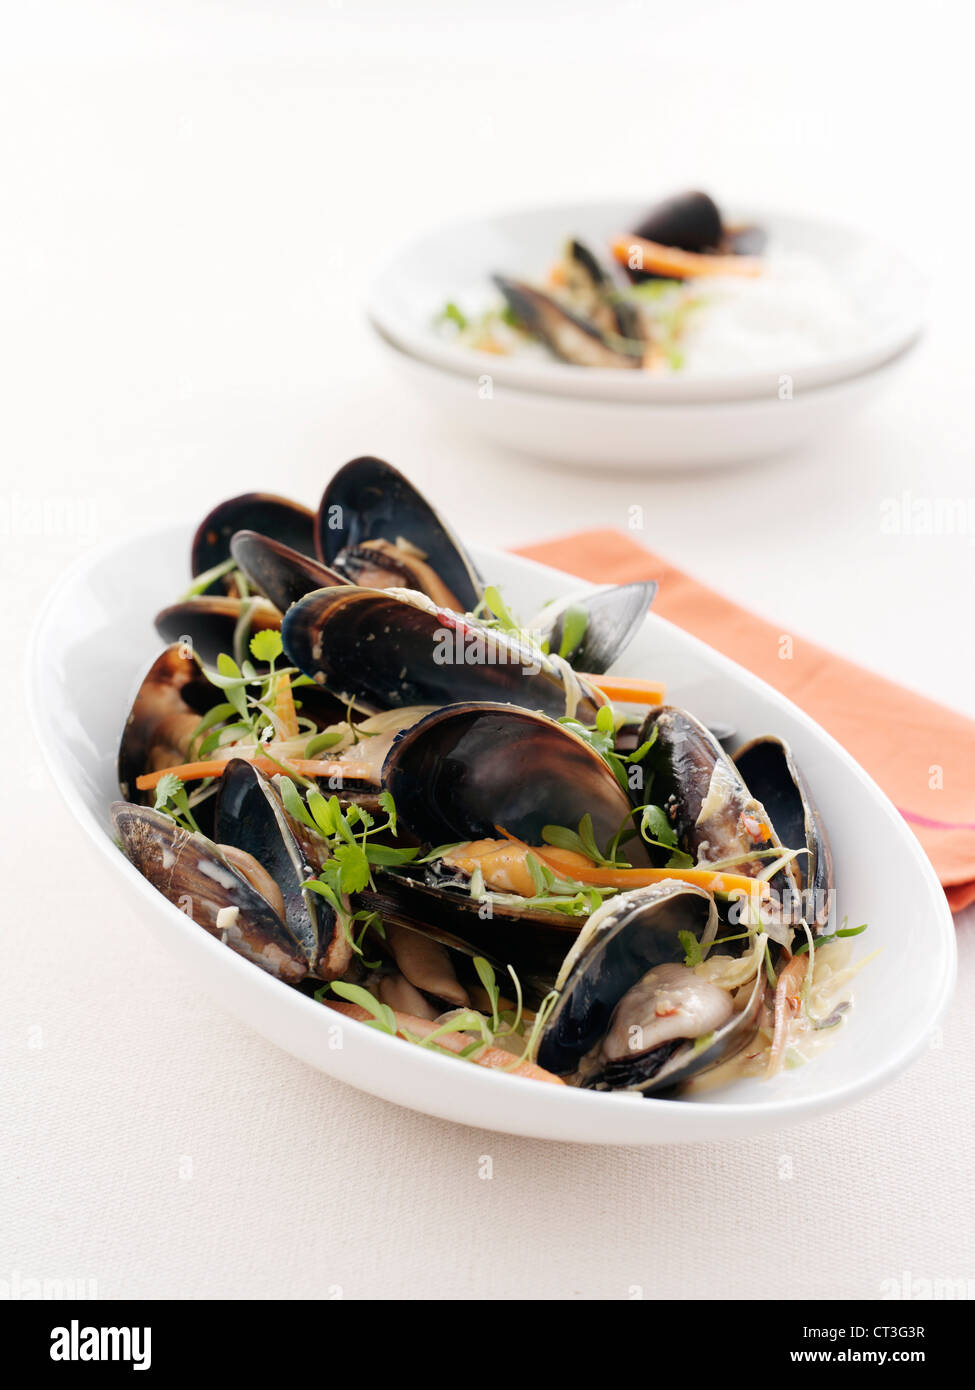 Plate of clams and pasta - Stock Image